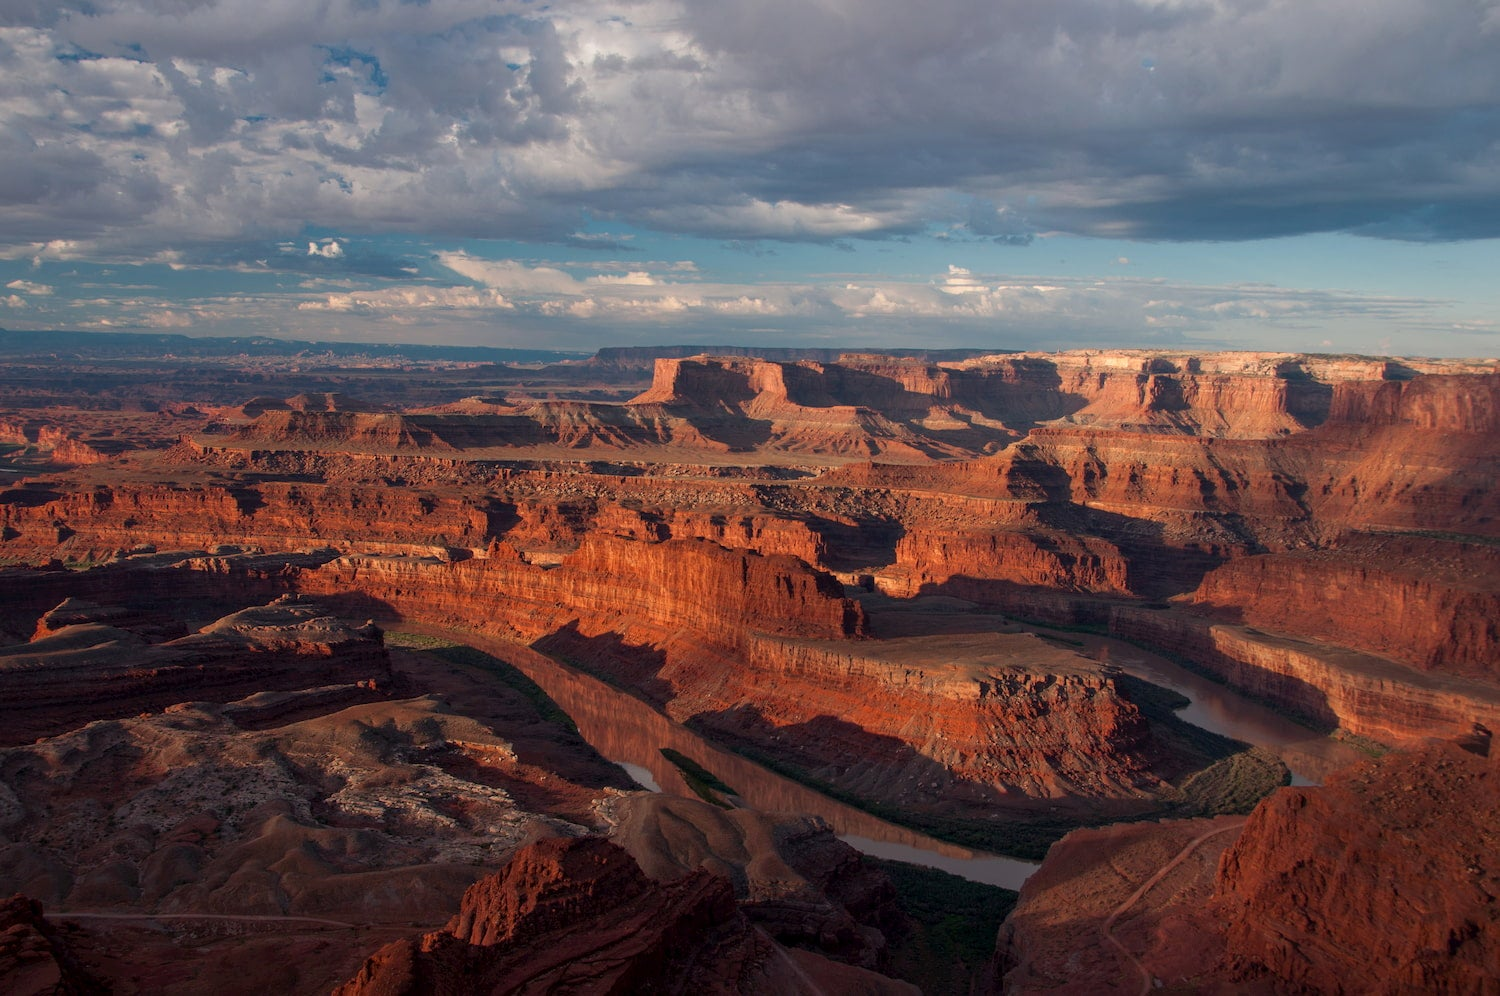 landscape of Colorado river at dead horse point state park